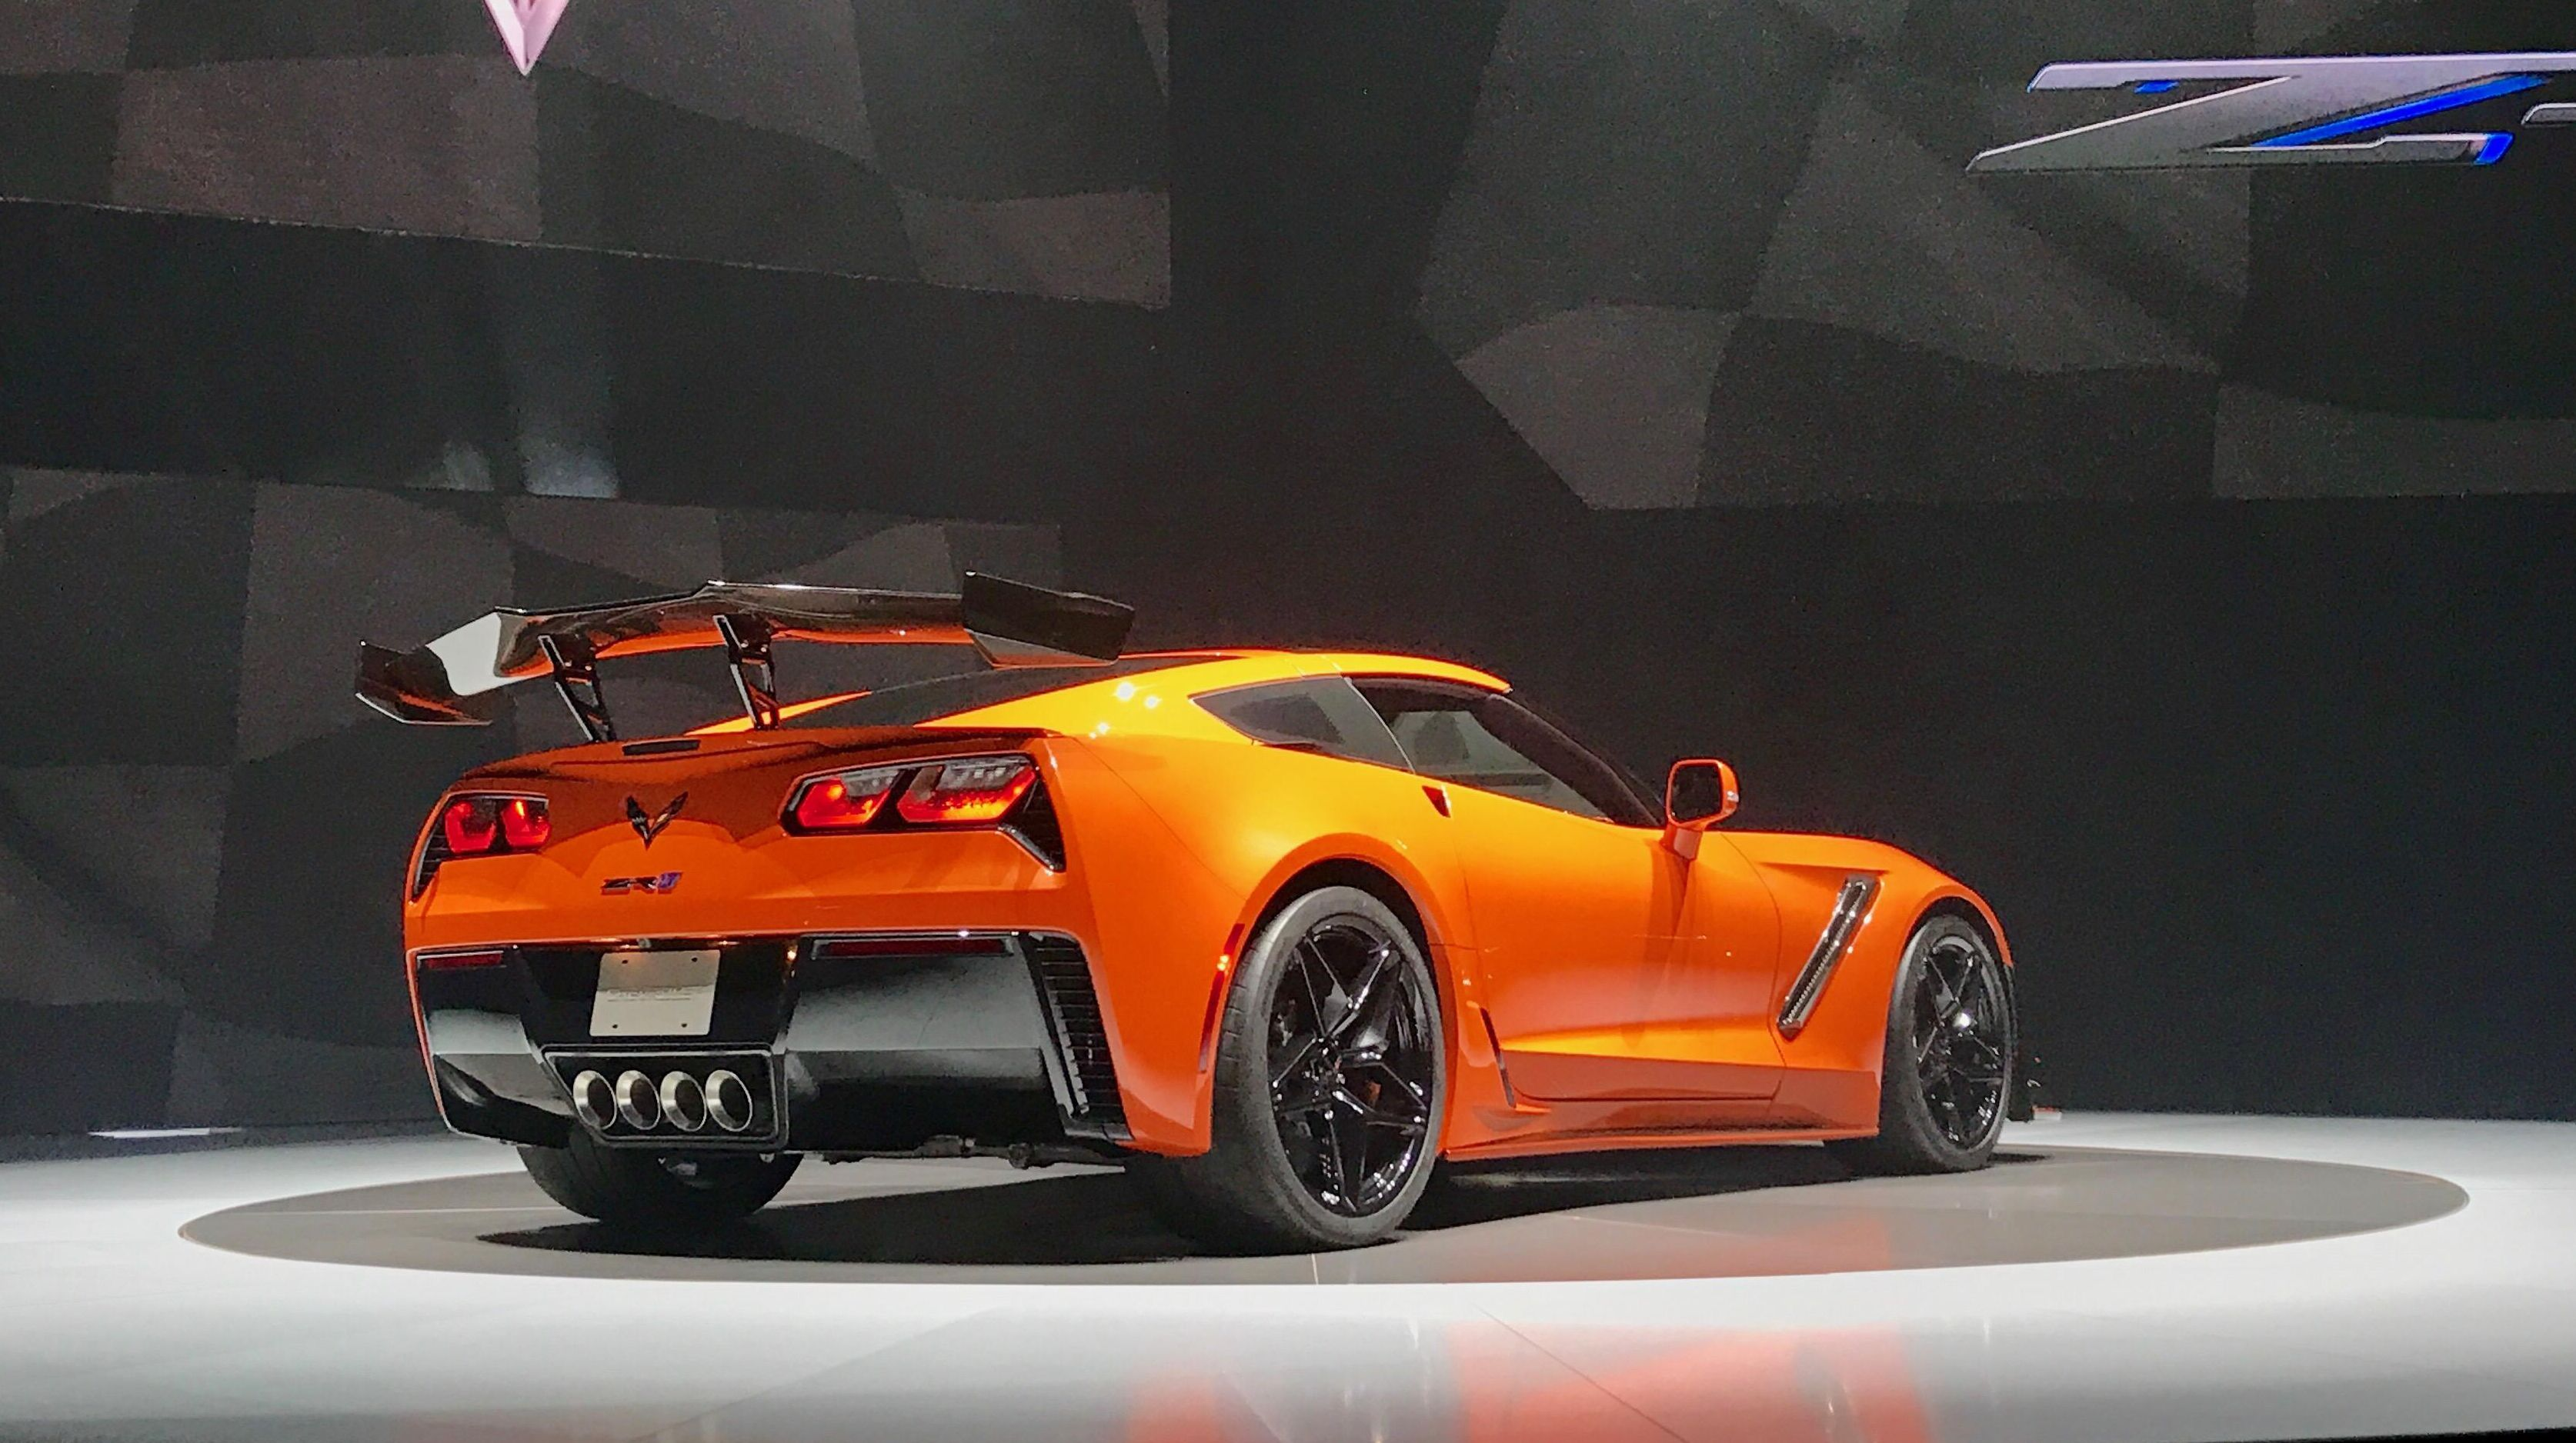 The 2019 Corvette ZR1 | 2019 - C7 Corvette | CorvSport.com